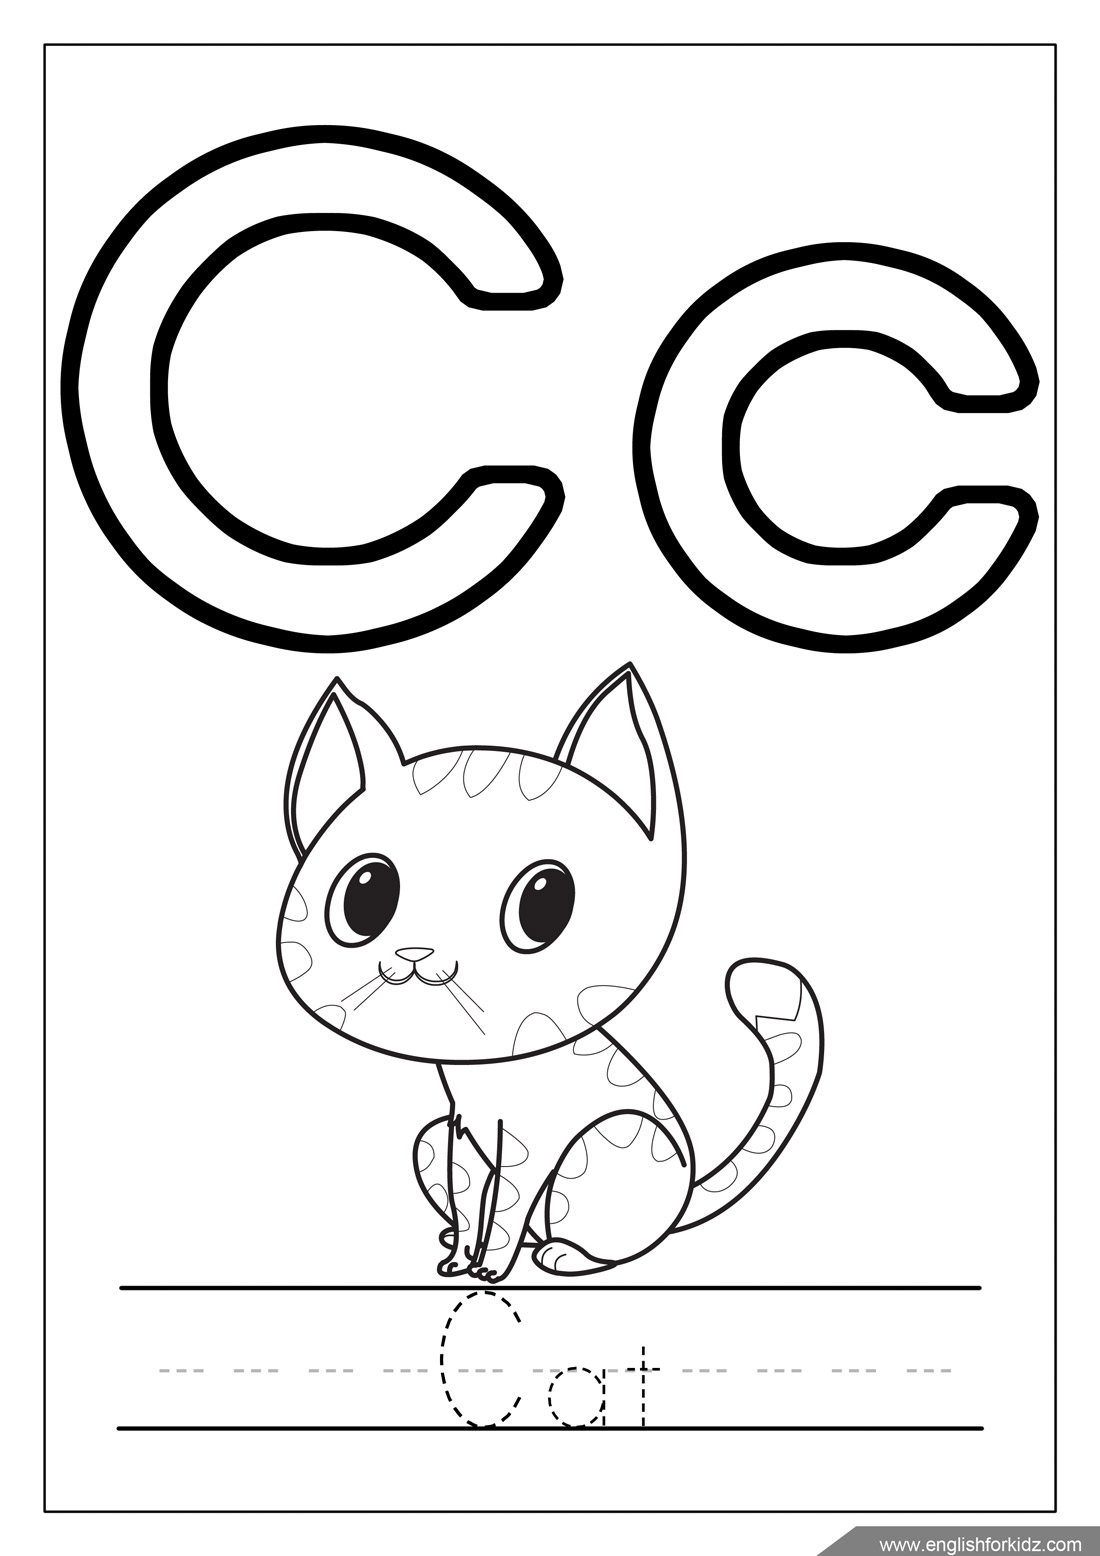 Printable alphabet coloring pages letters a j for Alphabet pages to color